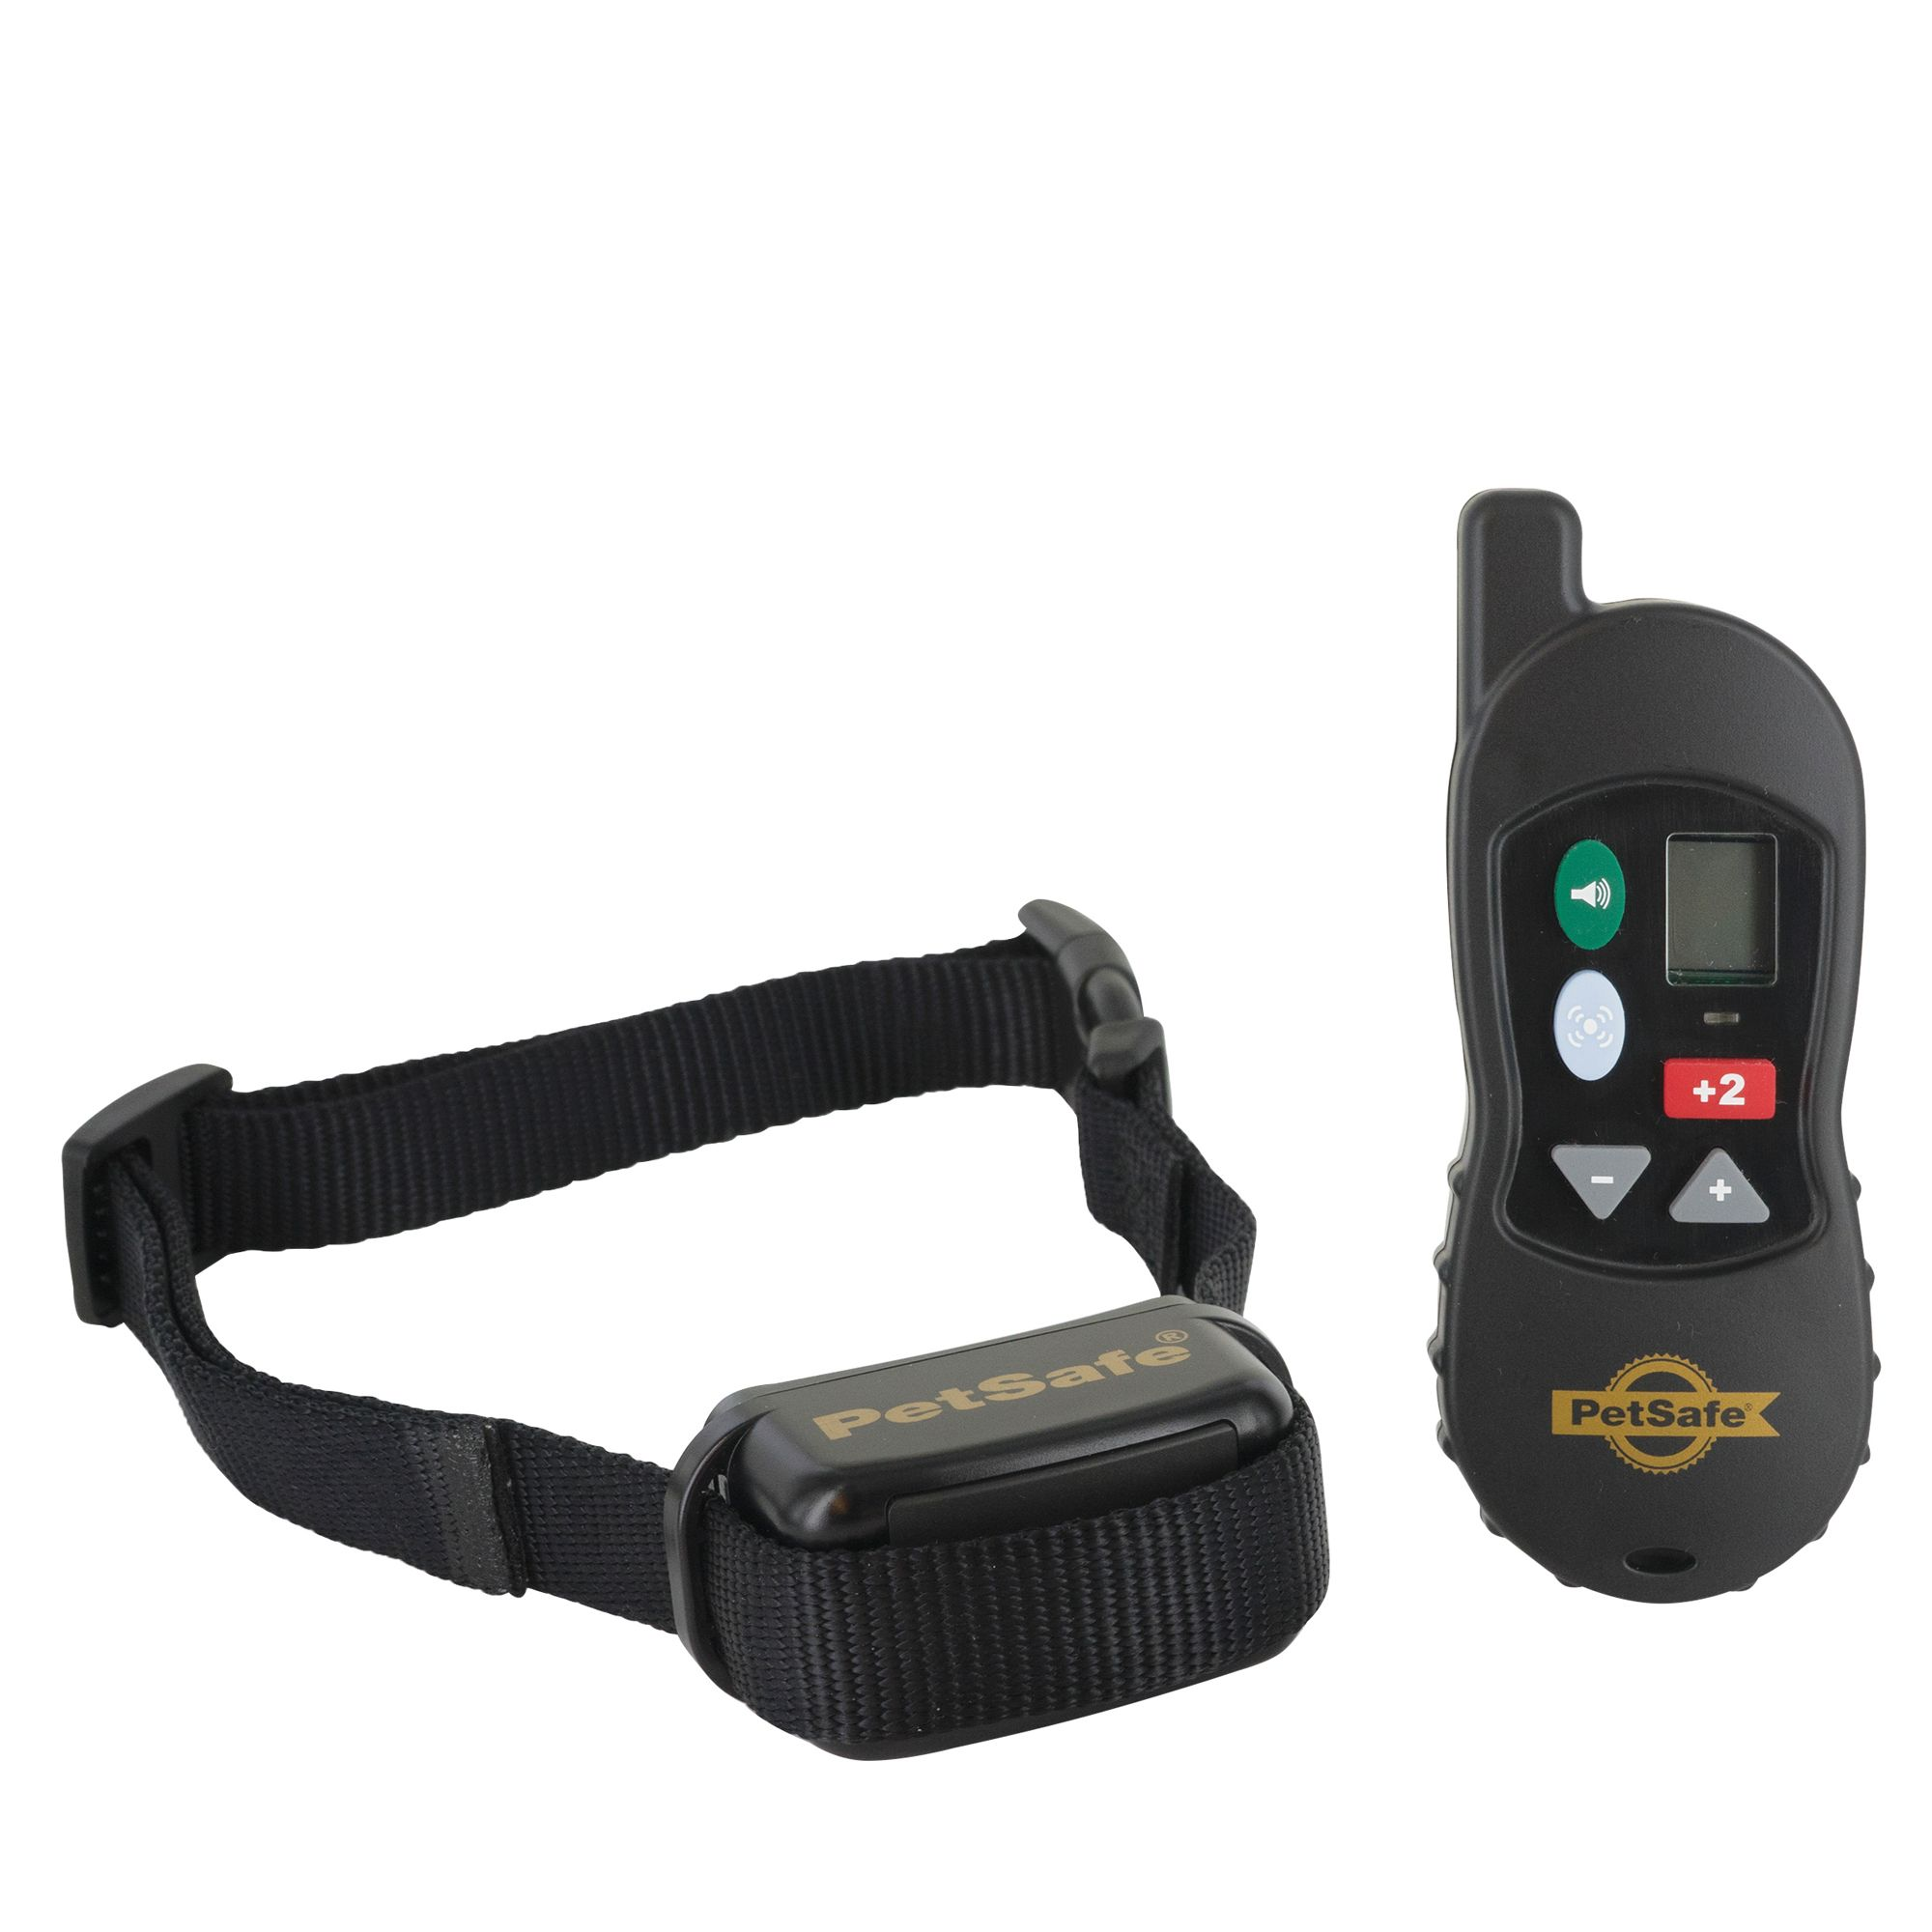 PetSafe Vibration Remote Dog Trainer 5238324